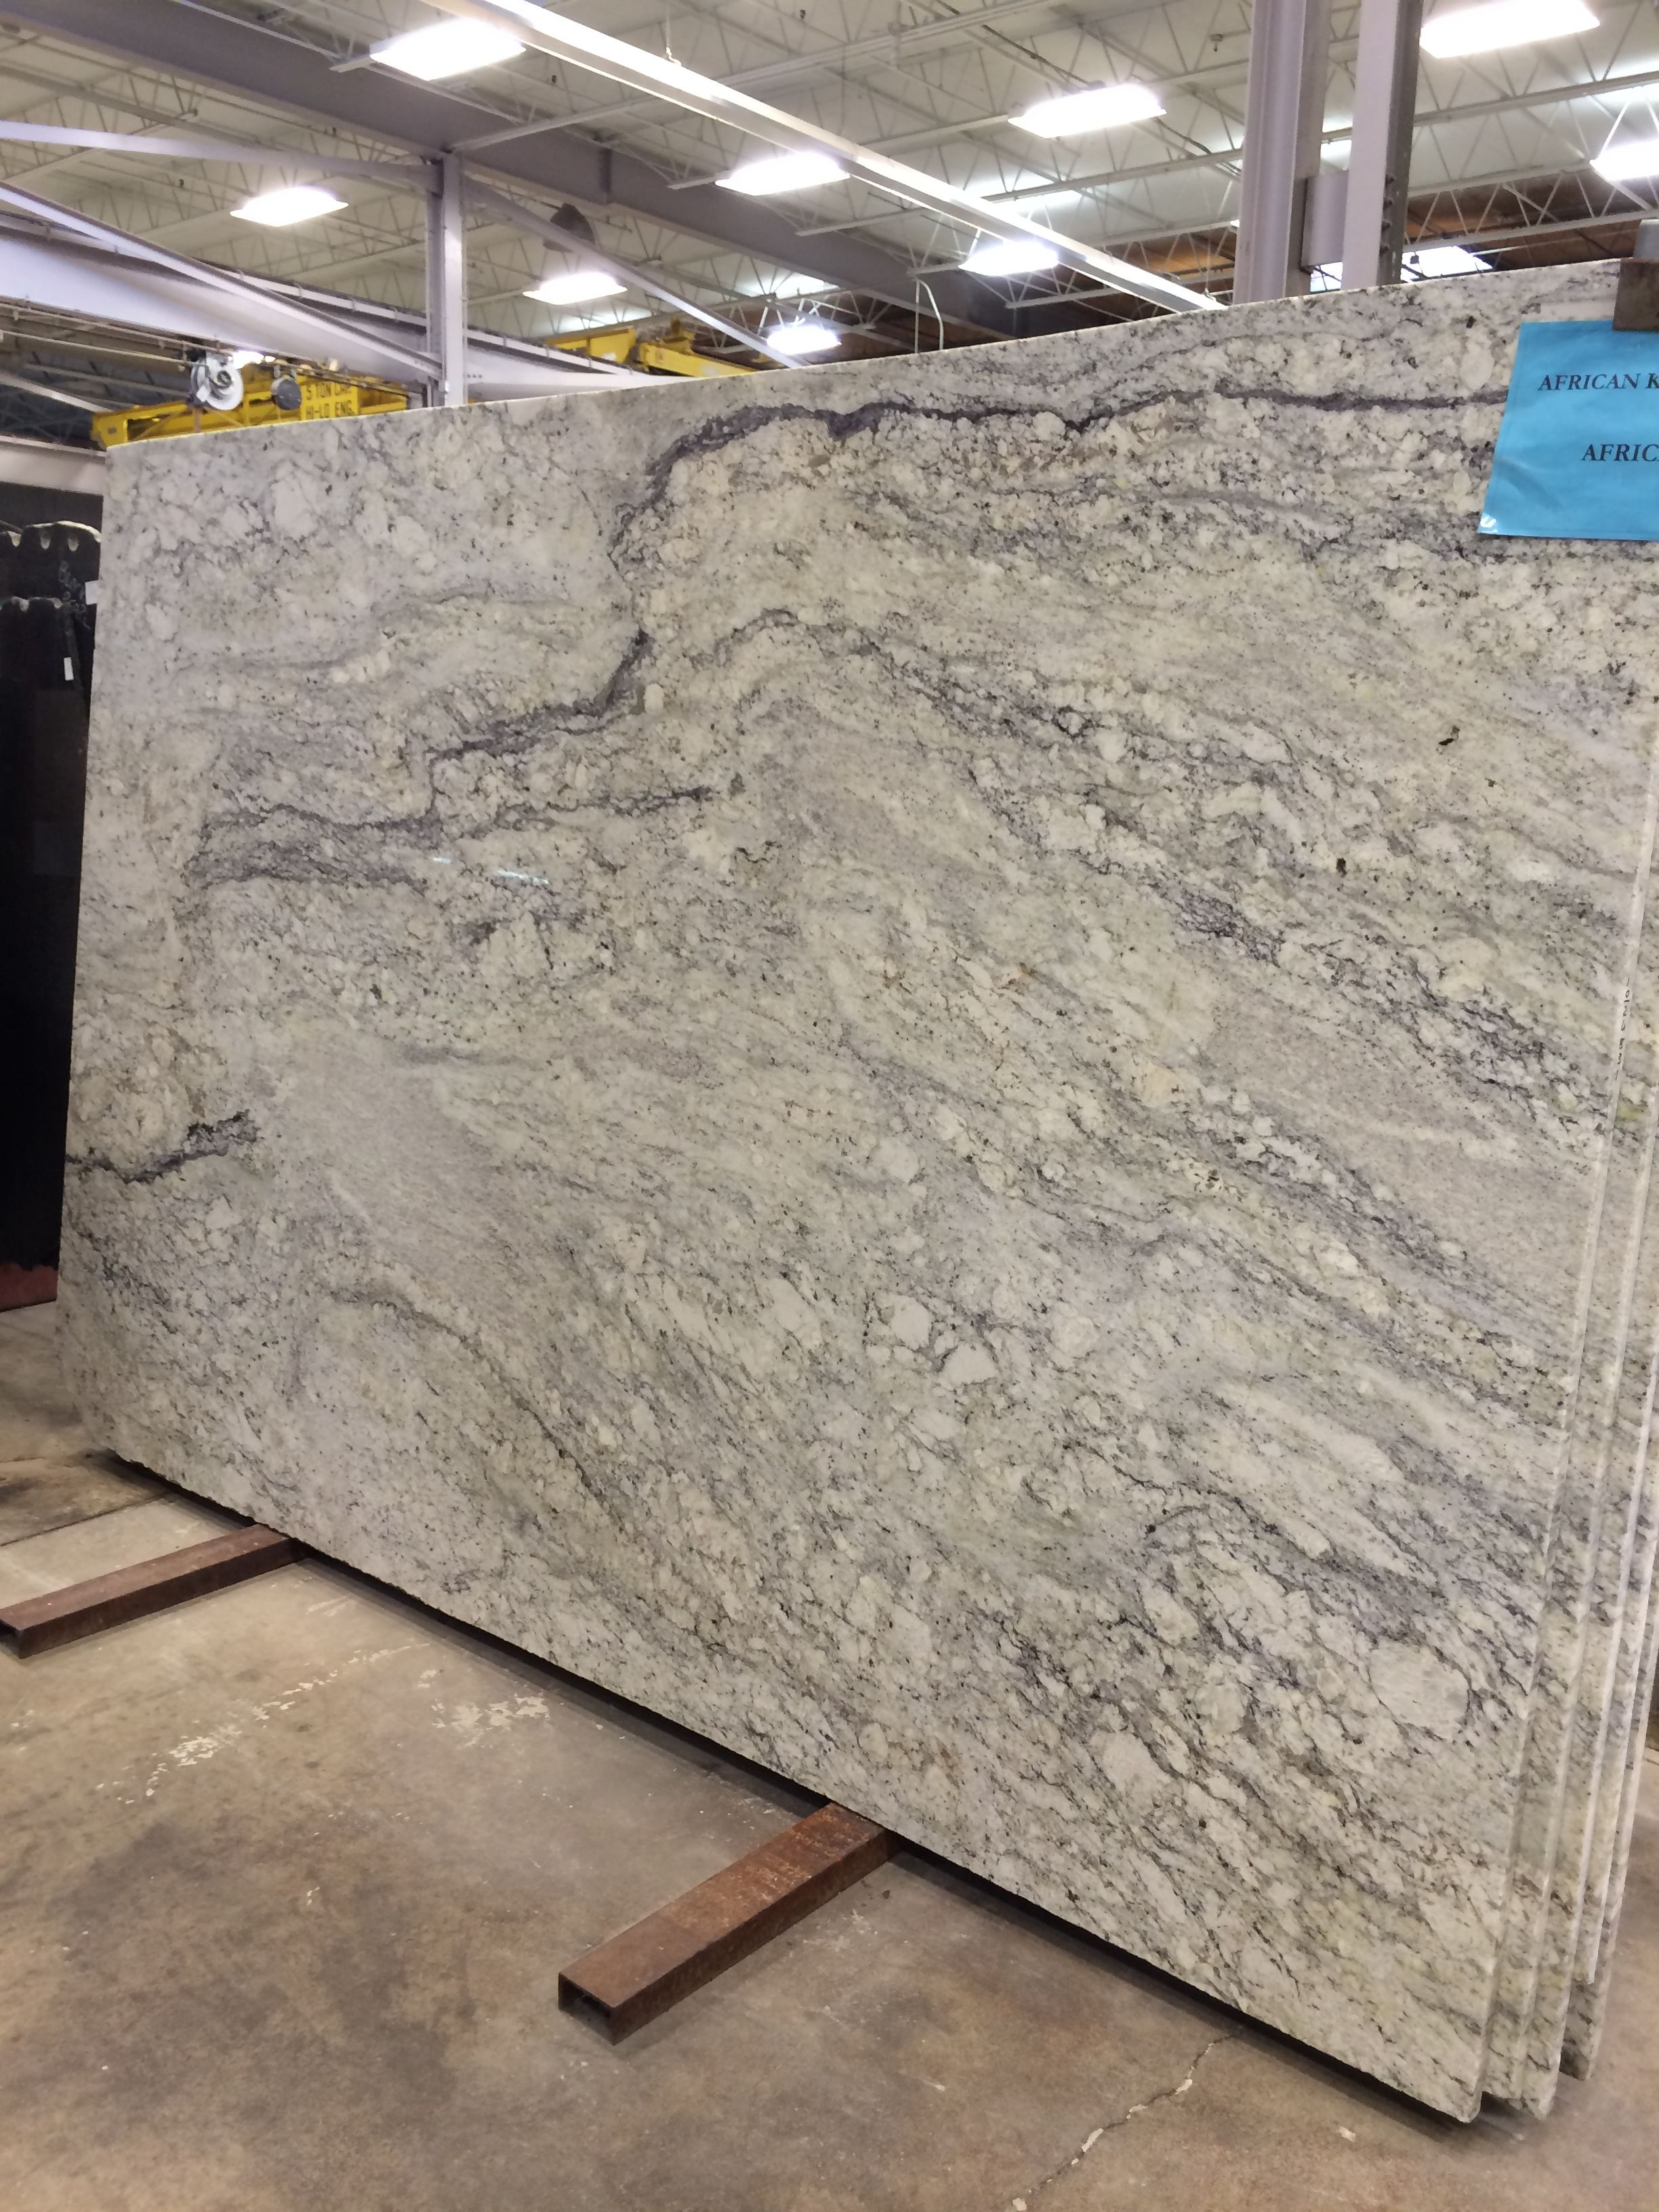 Bathroom Granite african keylime granite! #homedecor #countertops #kitchen